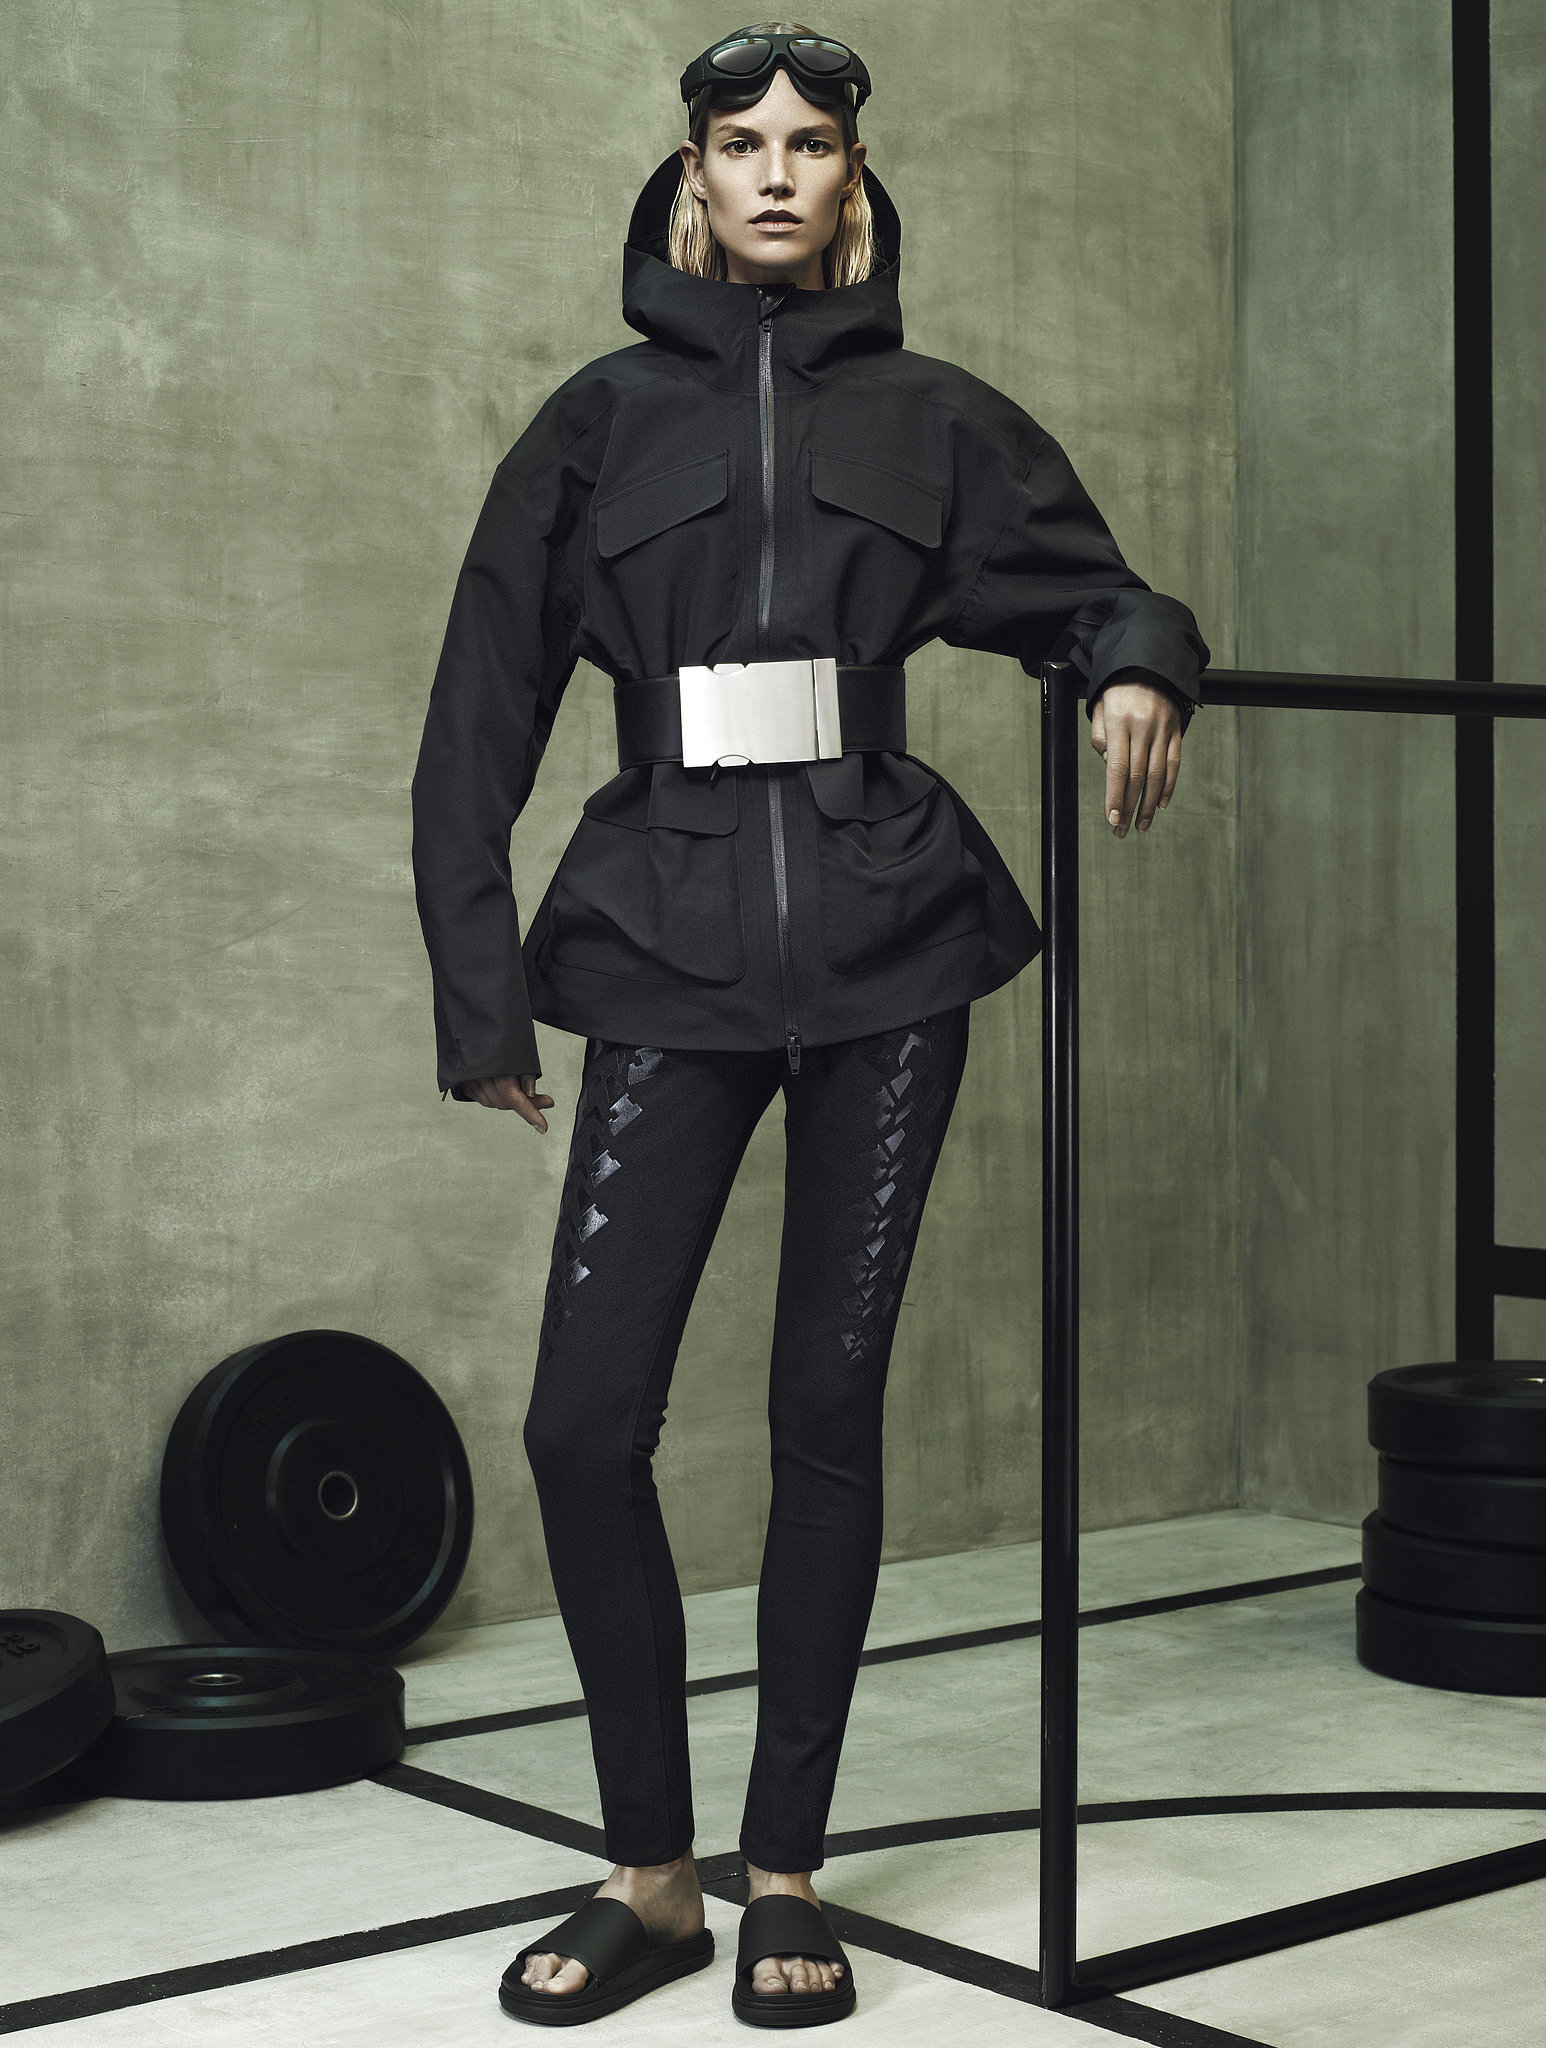 Ever since Alexander Wang and H&M announced their pending collaboration at the Coachella festival way back in April, fashionable folk have been dying to catch a glimpse of the designs and itching.